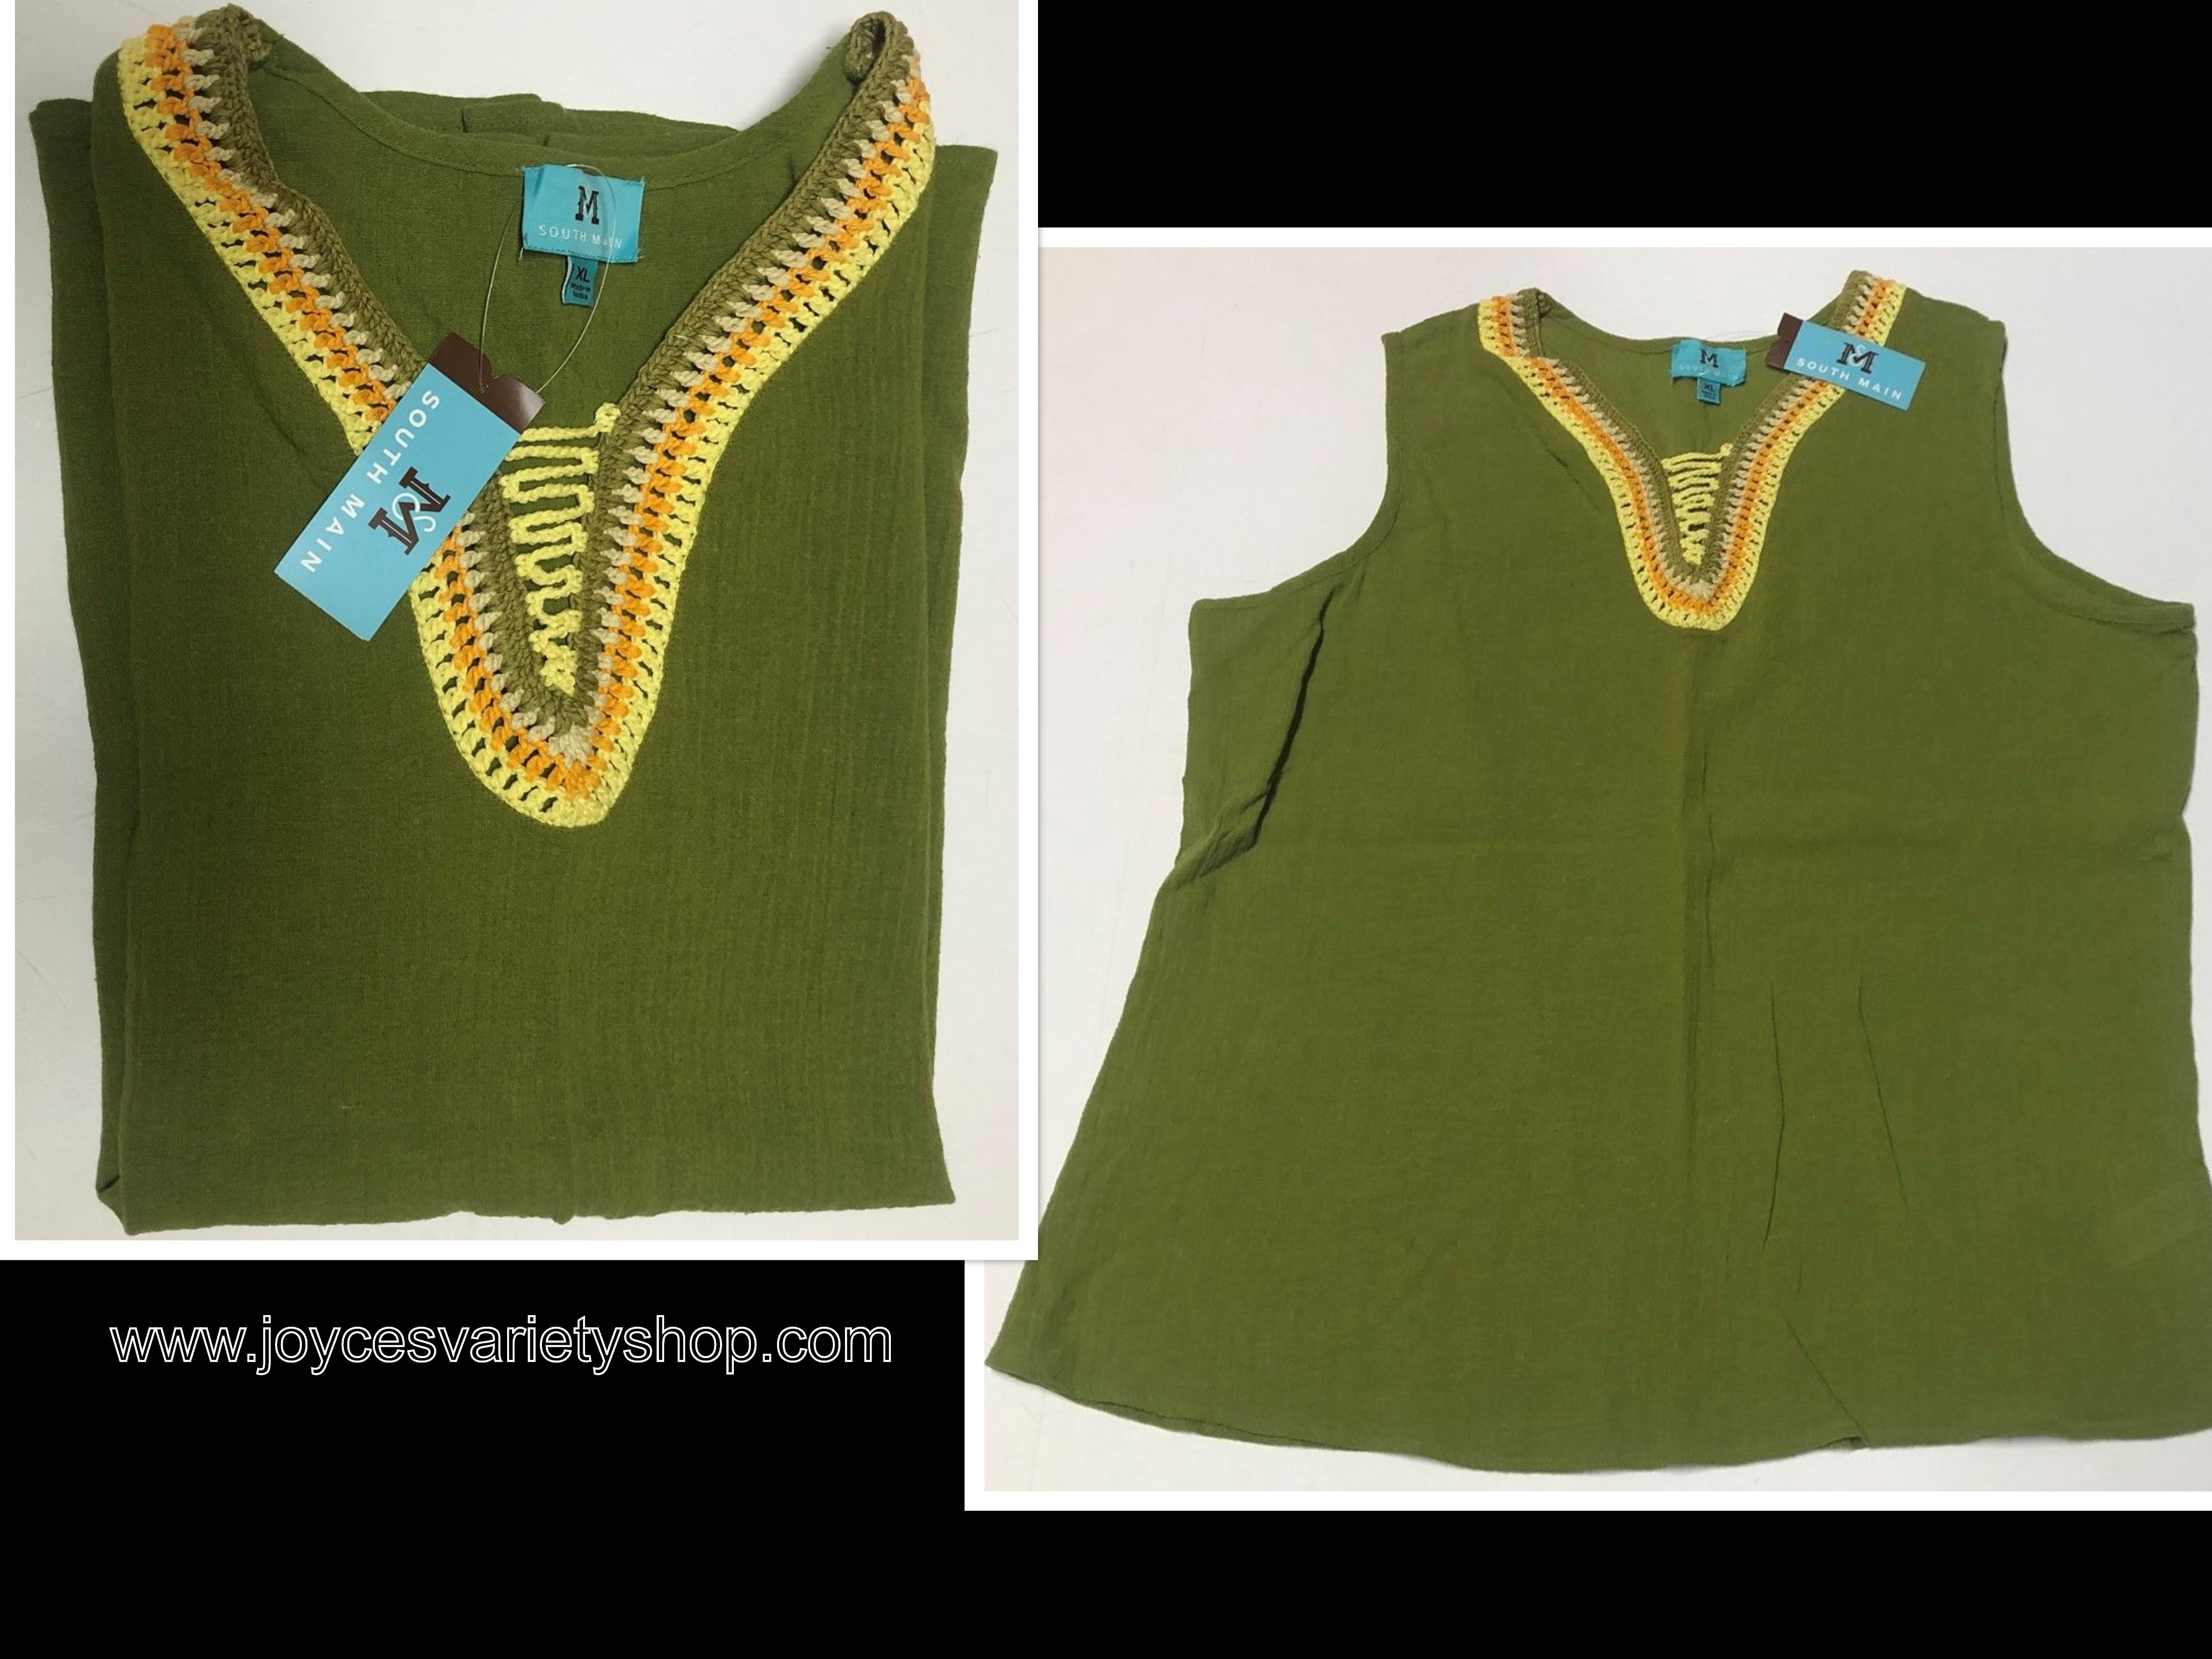 South Main Women's Blouse Top Tank Adult XXL, XL Cotton Crochet Olive Green